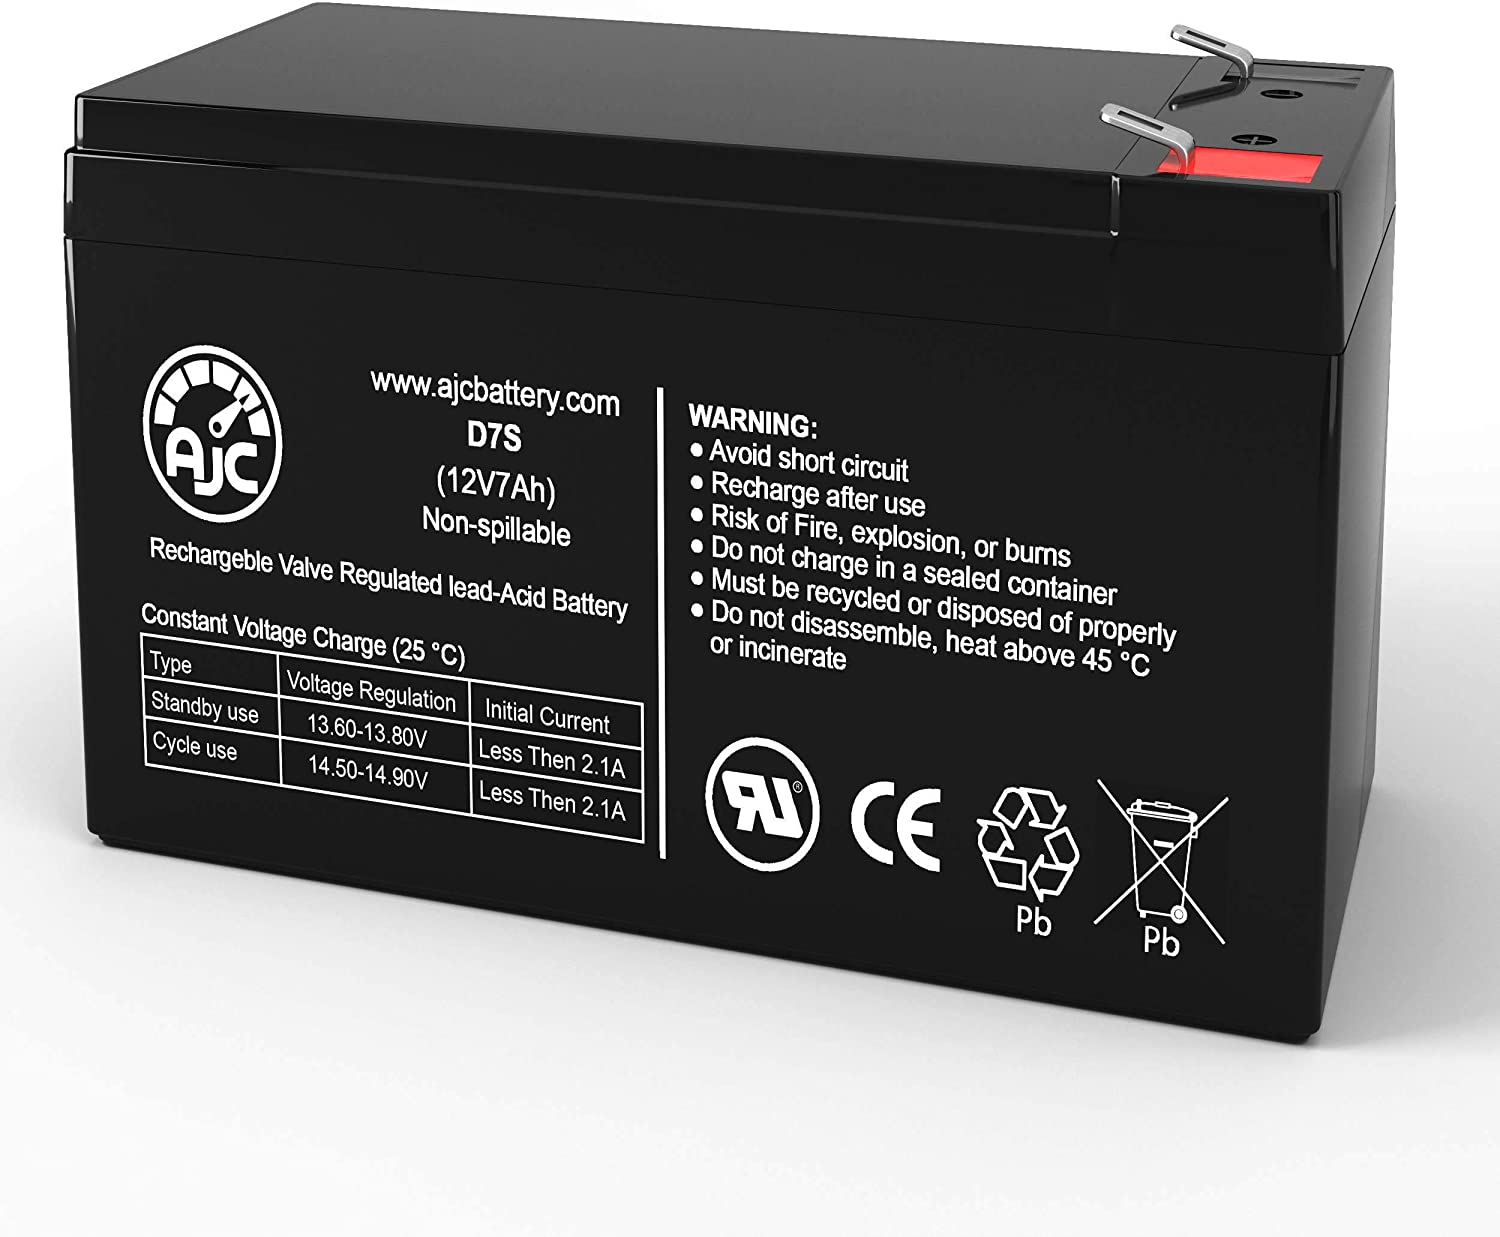 Razor Razr MX400 12V 7Ah Electric Scooter Battery - This is an AJC Brand Replacement